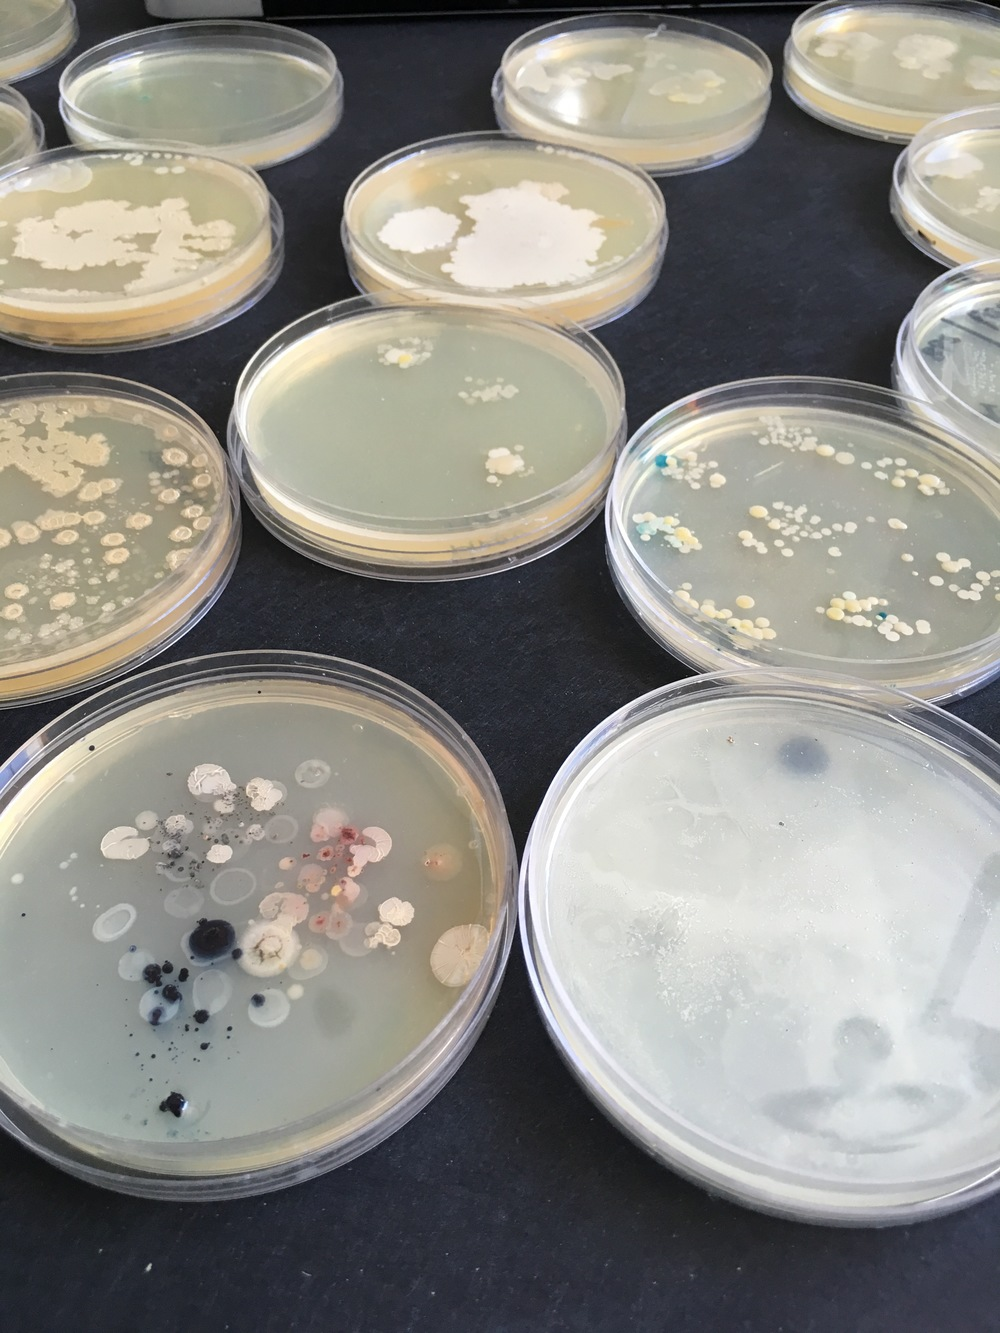 Plated identities: Human bacteria and the paintbrush